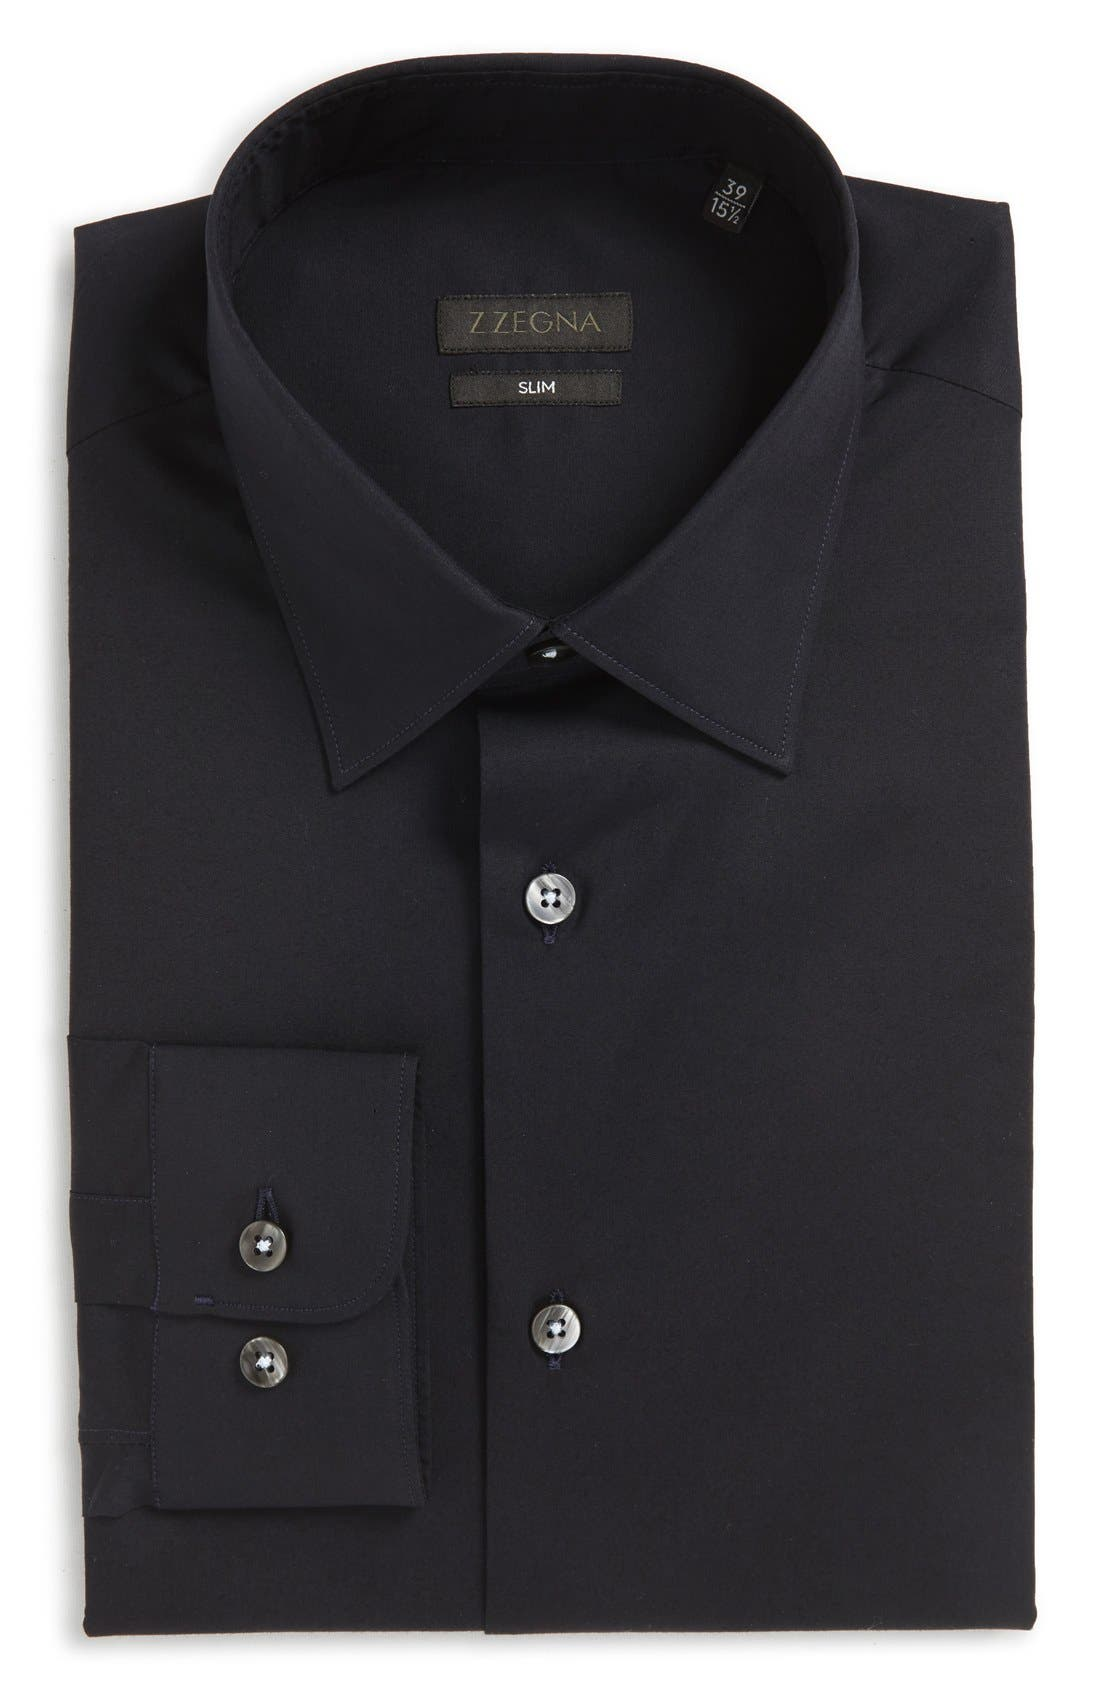 Z Zegna Slim Fit Solid Stretch Dress Shirt